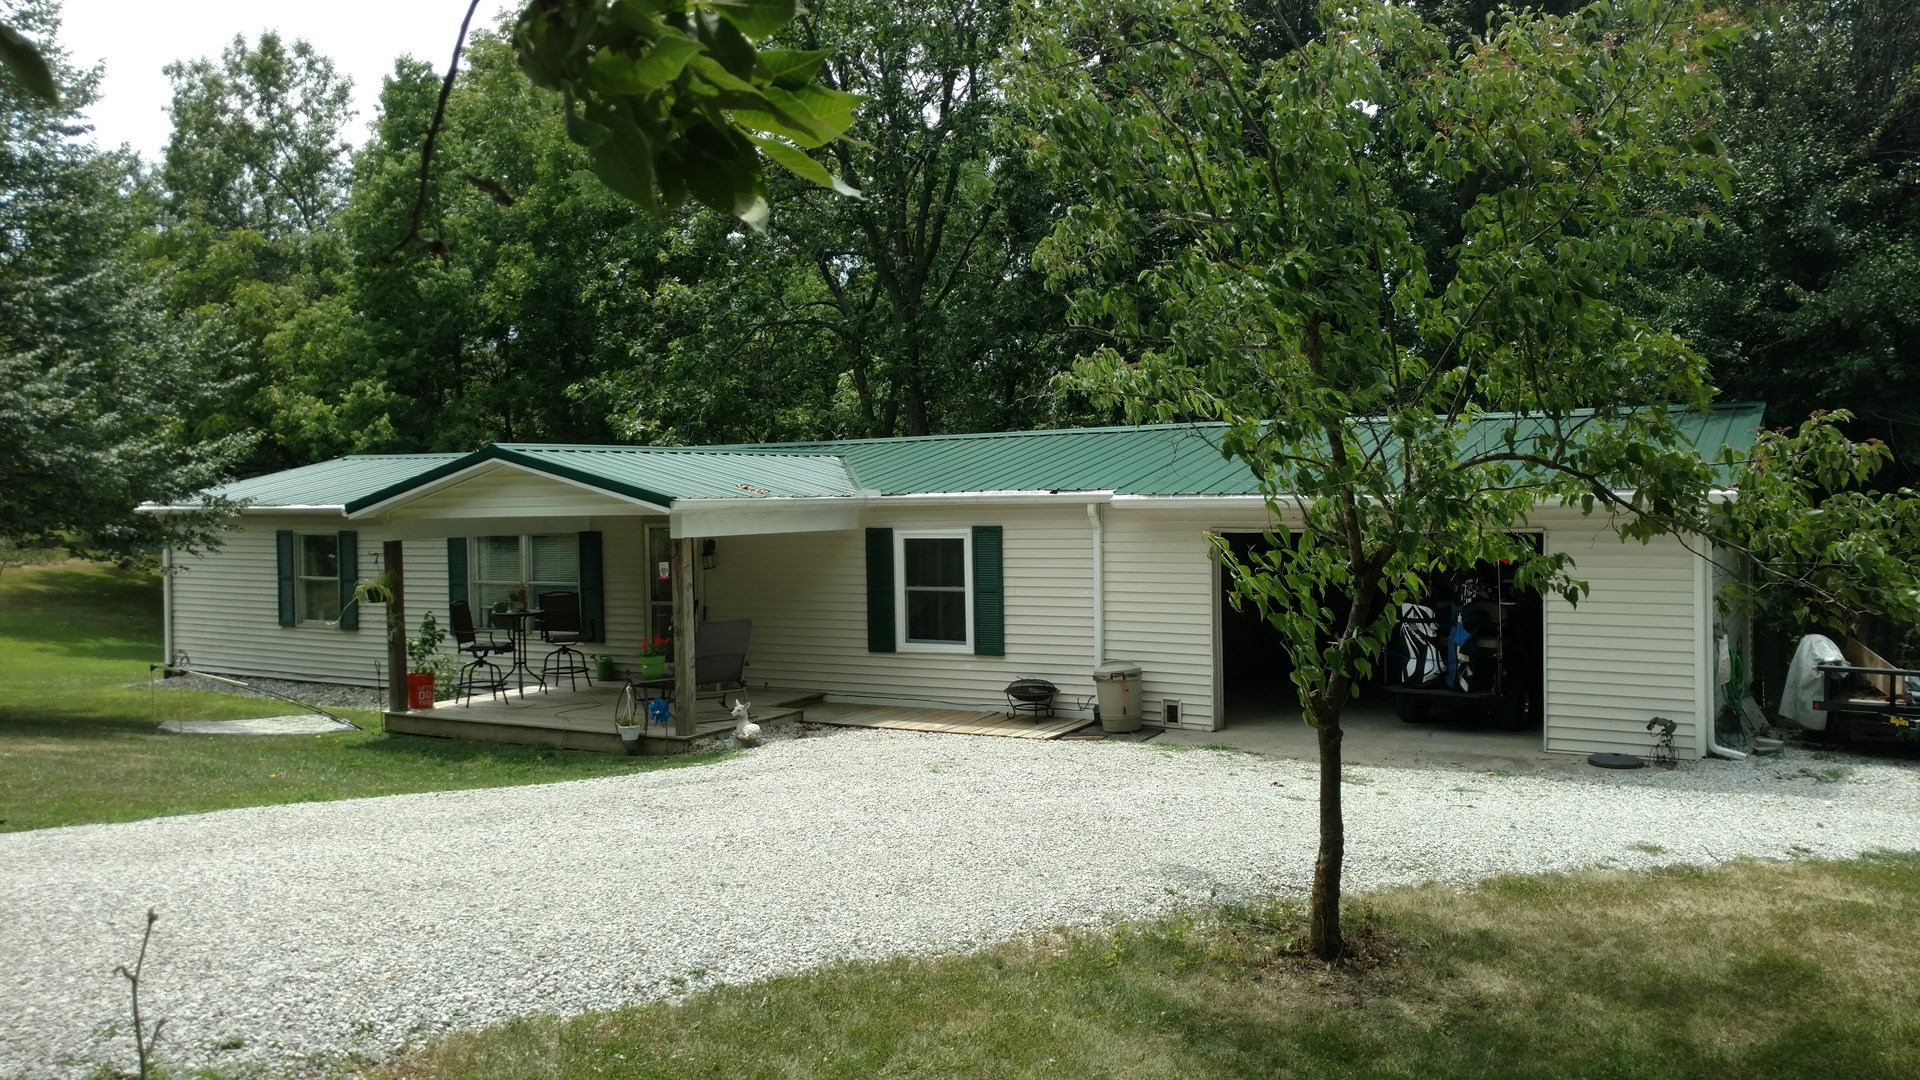 Property with home for sale at Lake Thunderhead in North MO